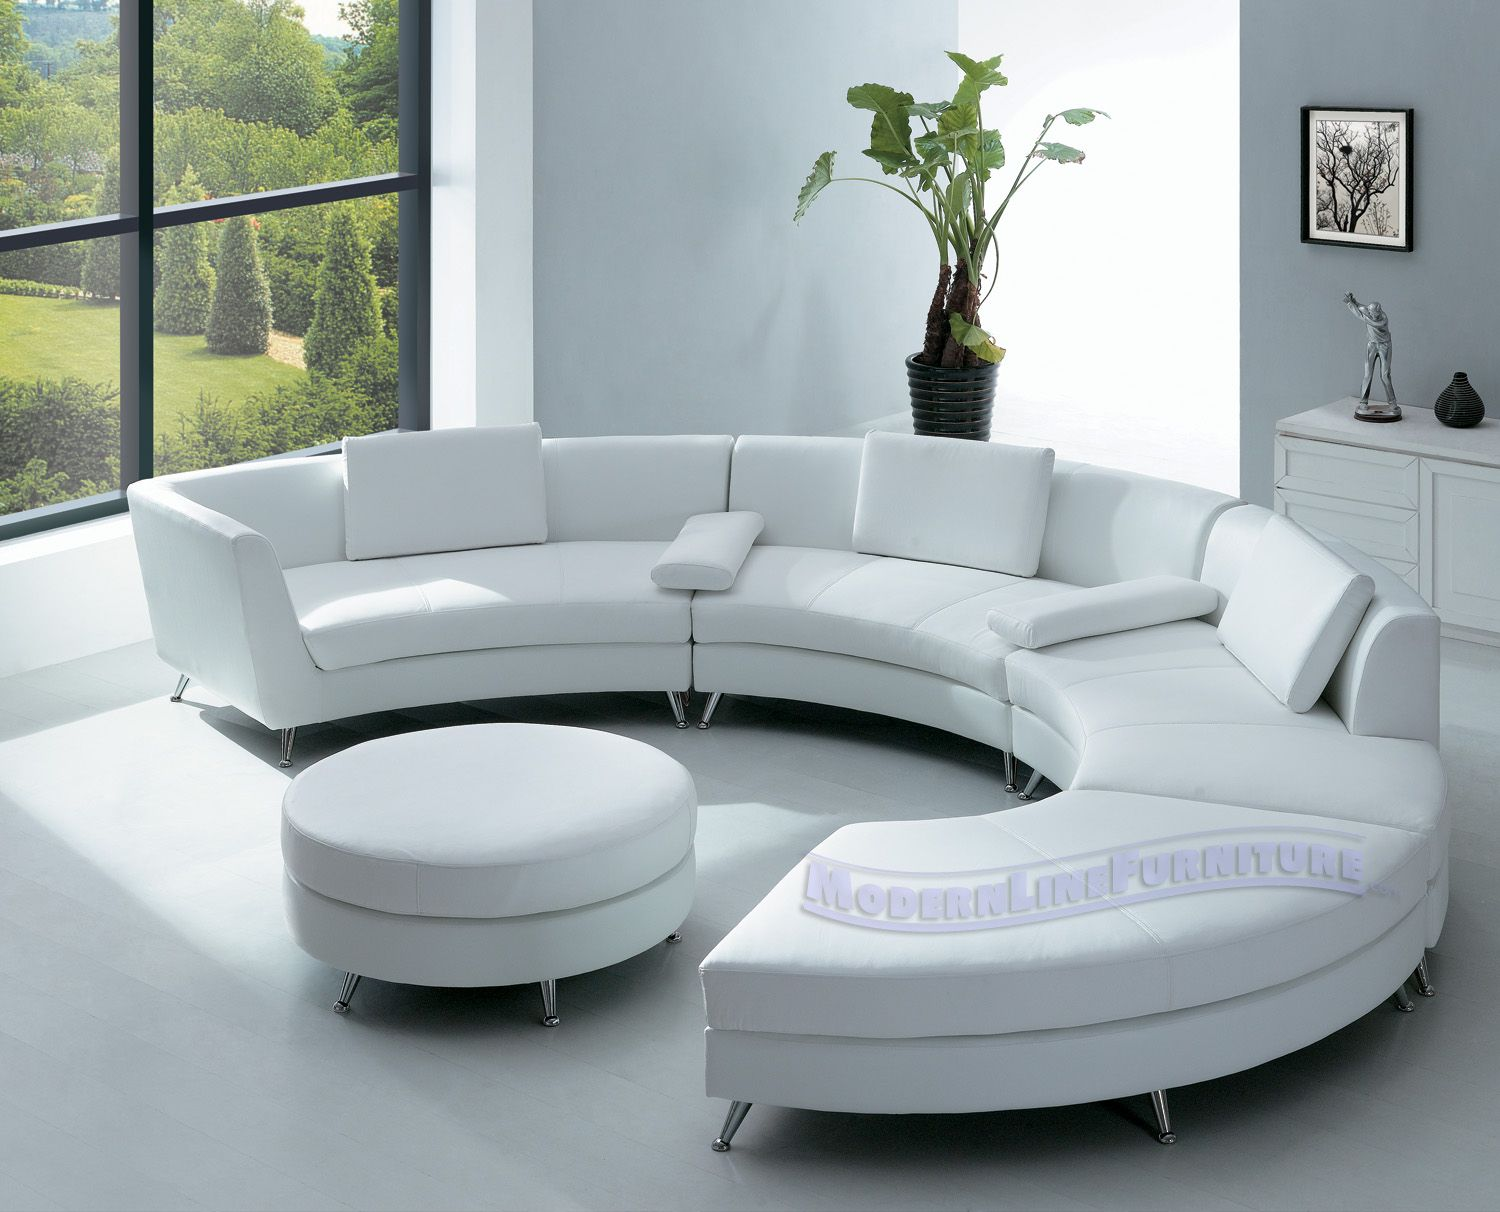 Paris ultra modern white living room furniture sofa sets - White Sofa Furniture For Small Living Room Home Design Modern Living Room Furniture Round Sofa Best Photo 01